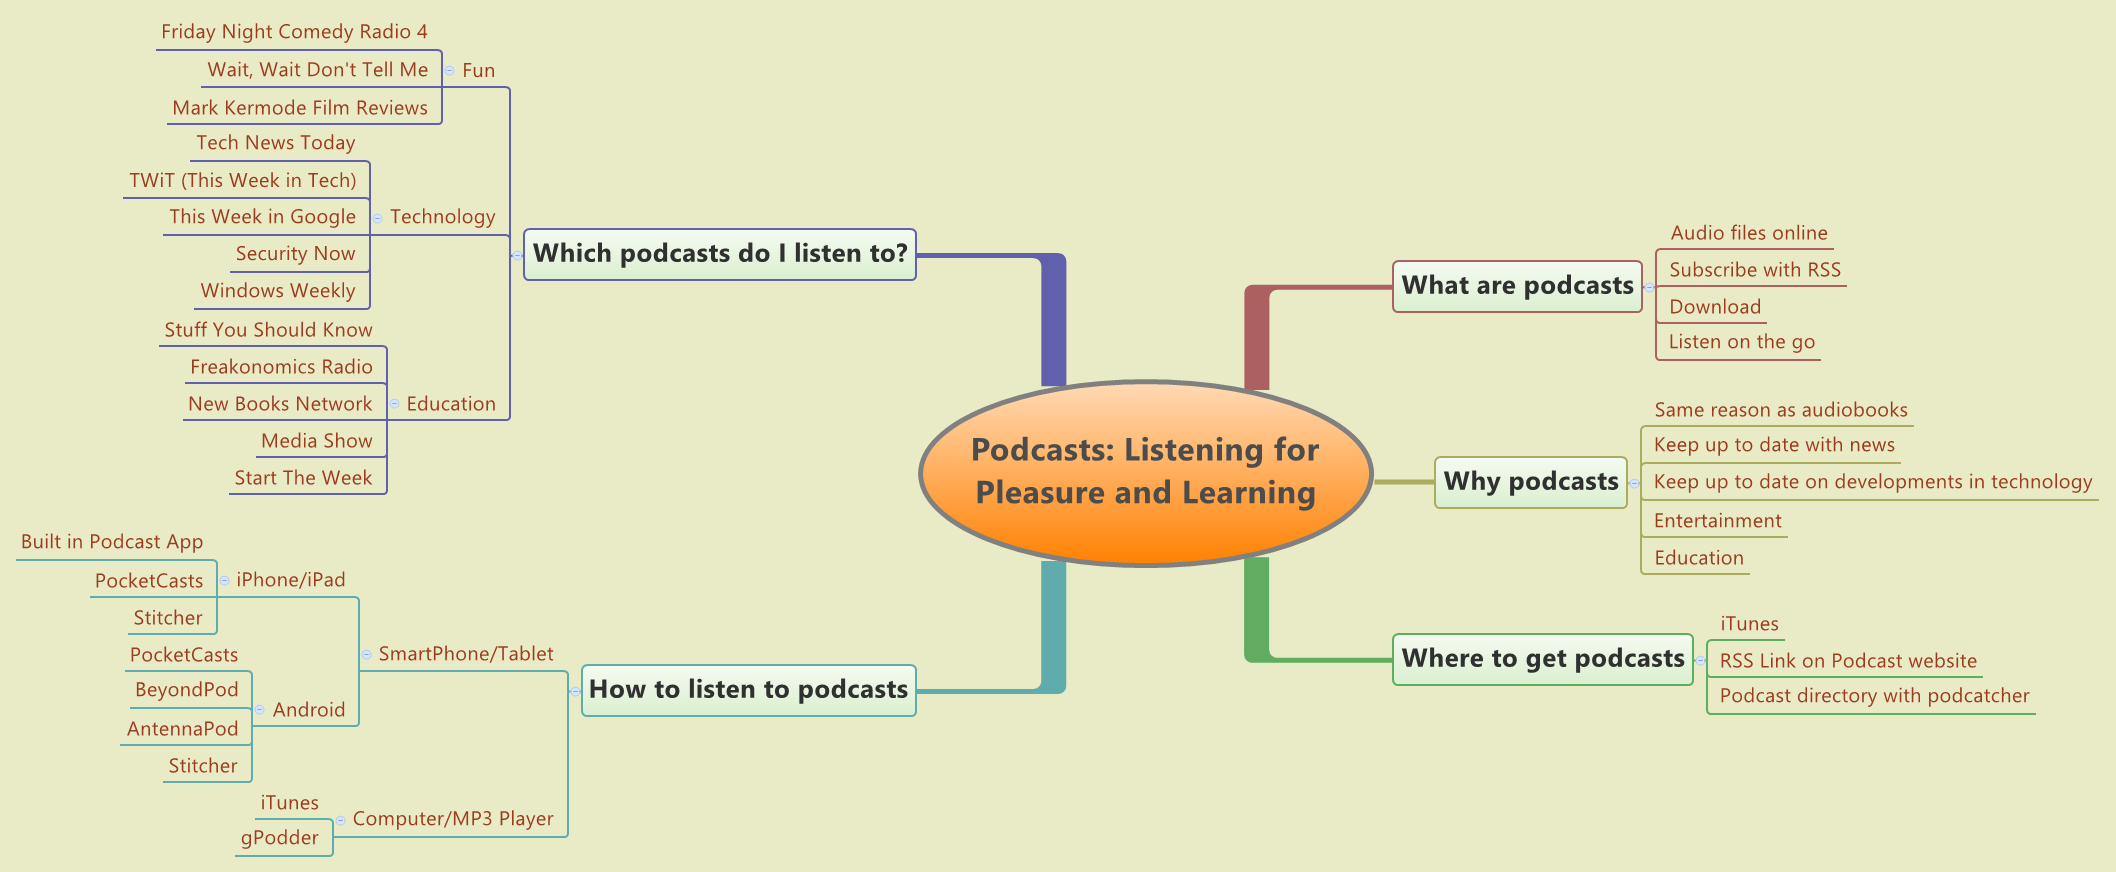 Podcasts: Listening for Pleasure and Learning